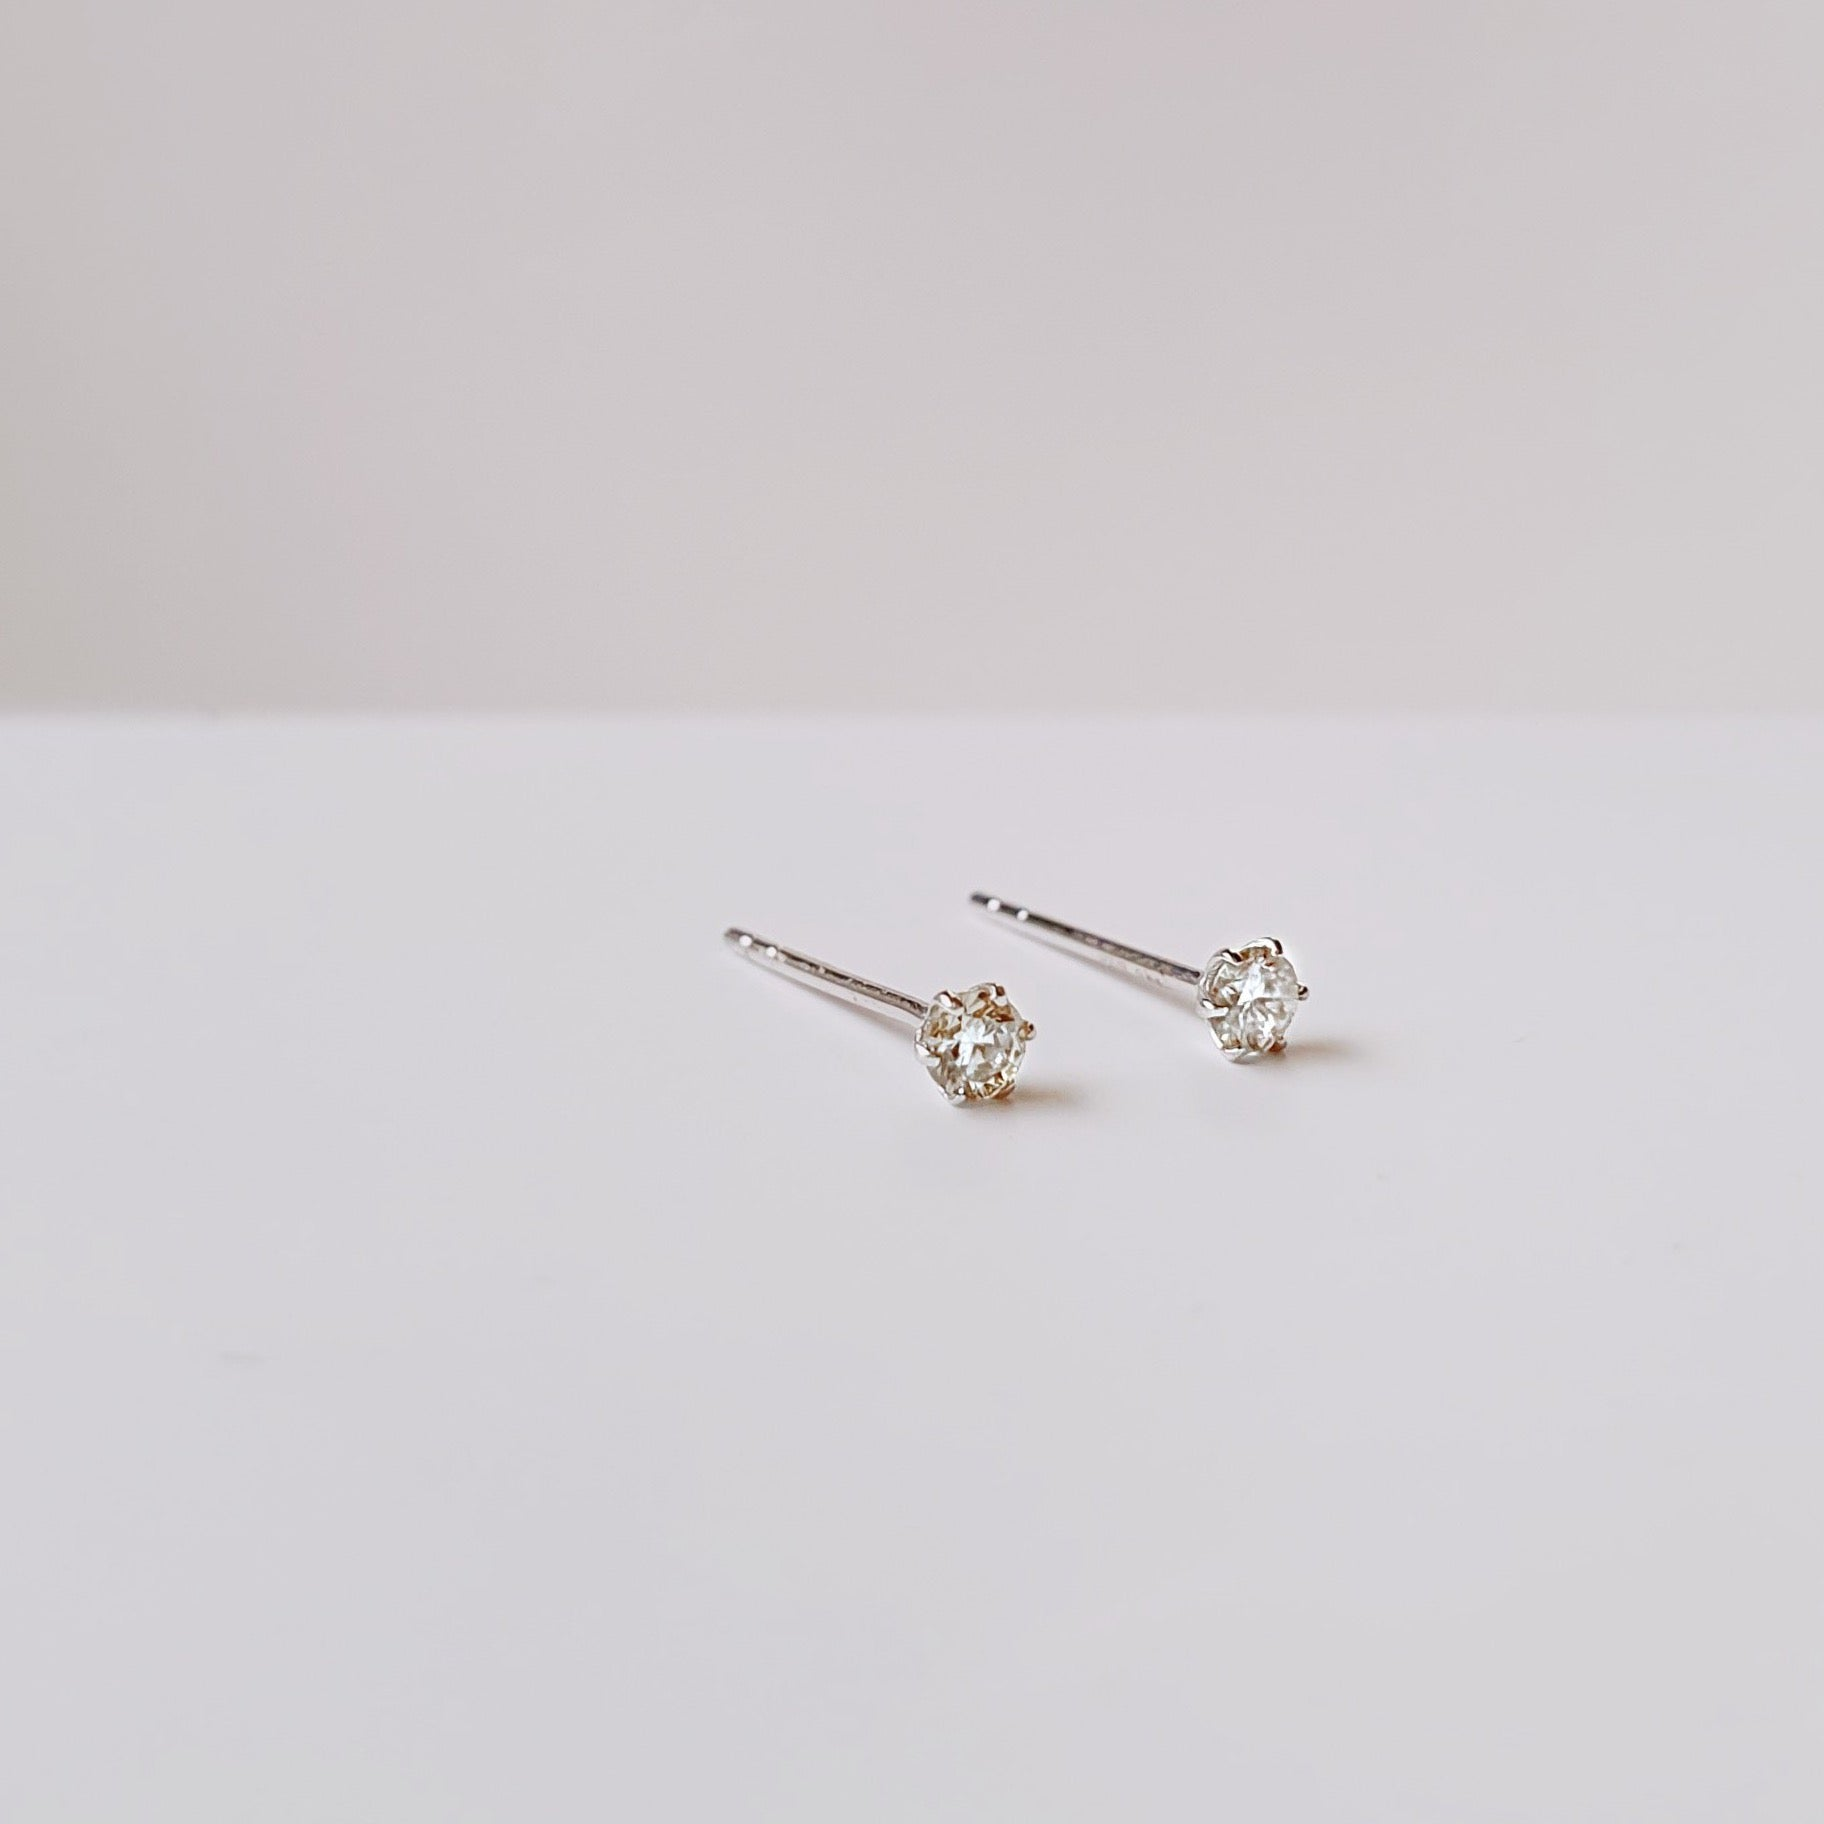 18k Diamond stud earrings in White Gold